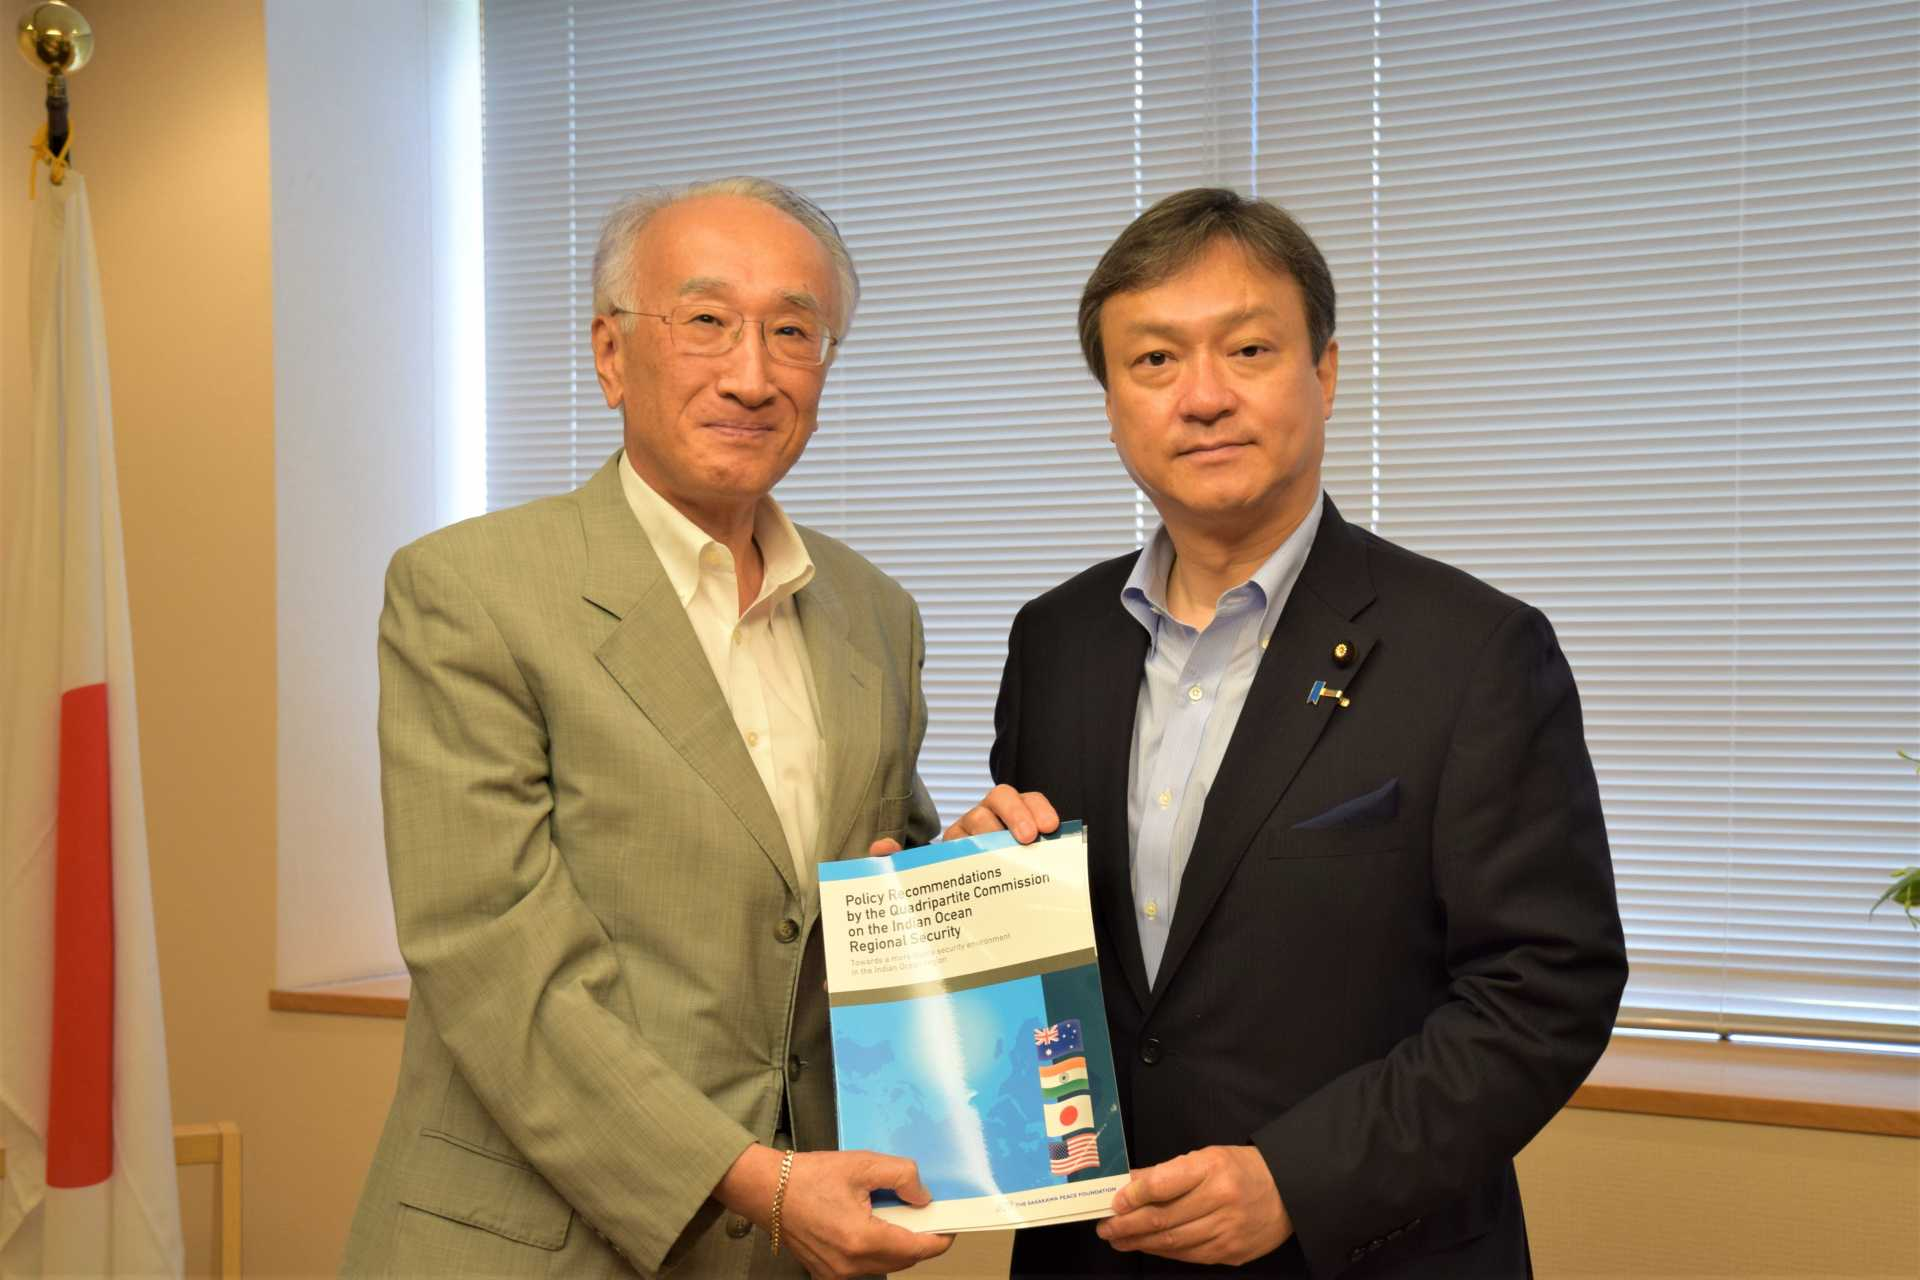 """Policy Recommendations by the Quadripartite Commission on the Indian Ocean Regional Security"" presented to Parliamentary Vice-Minister for Foreign Affairs Iwao Horii"